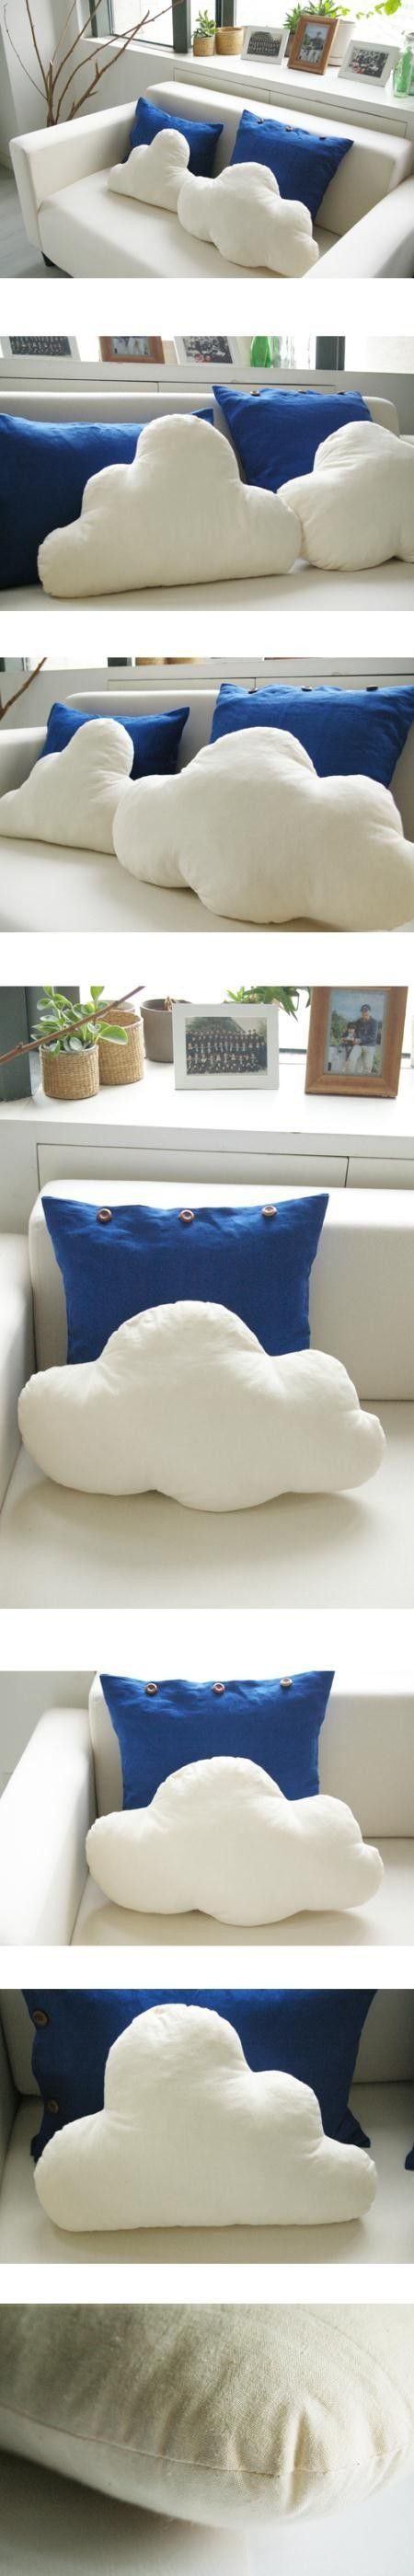 Cloud pillows! My next project [: